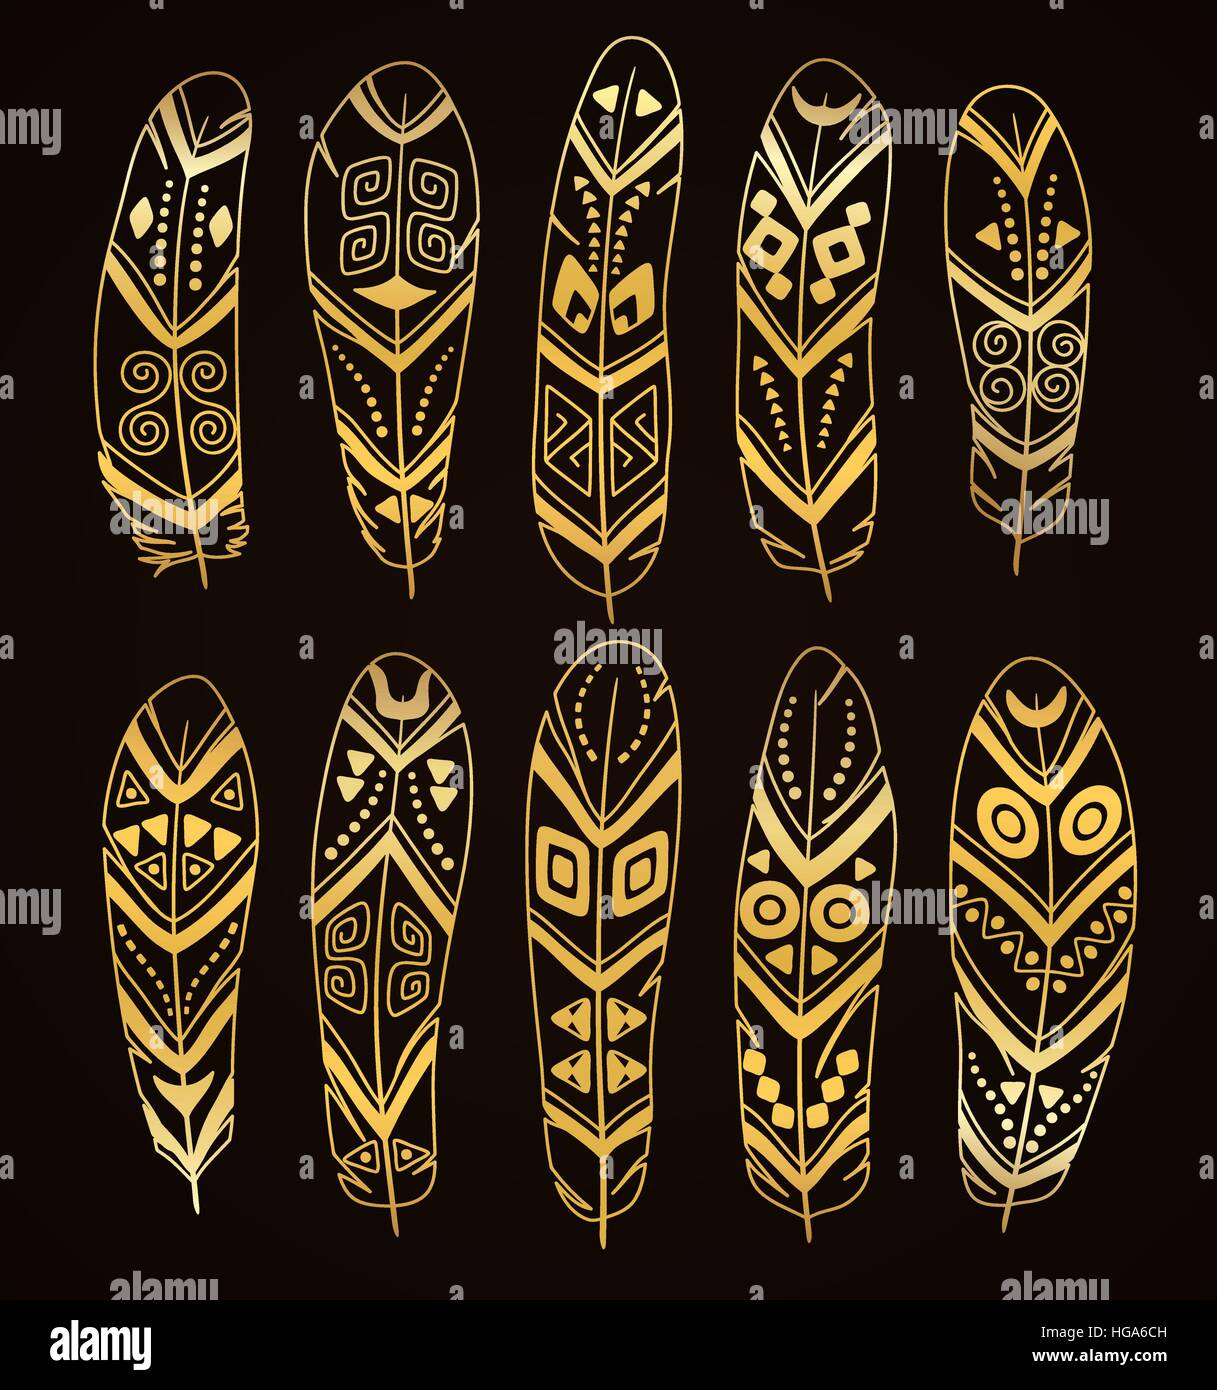 Hand drawn golden ethnic feathers set isolated on brown background. Collection of stylized tribal elements. - Stock Image